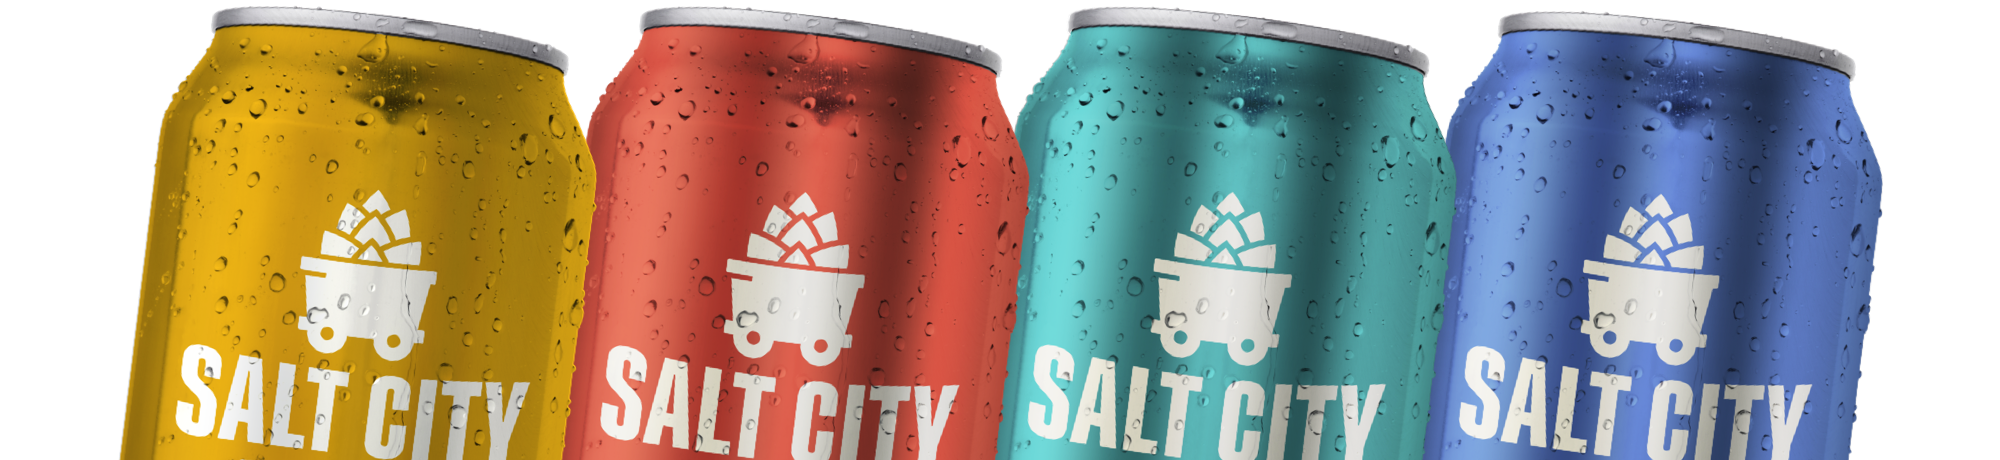 Salt City Brewing Co. flagship beers